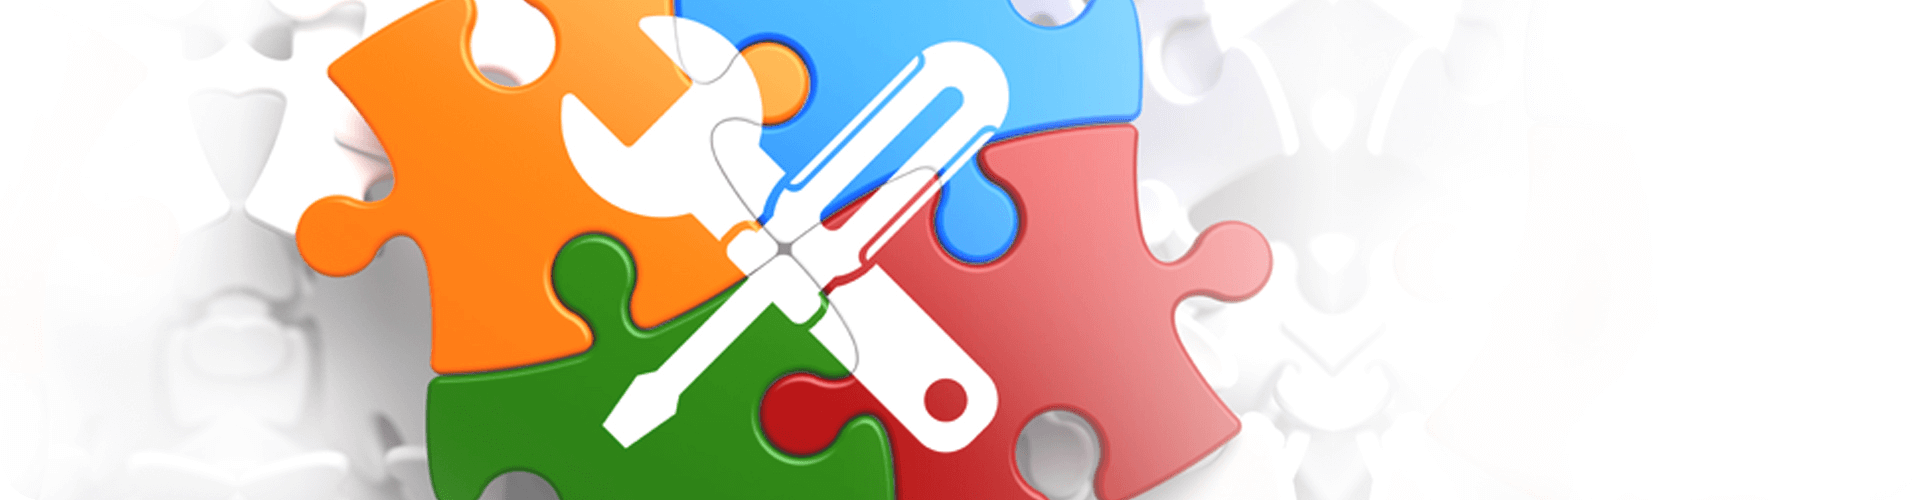 tools icon over jigsaw pieces